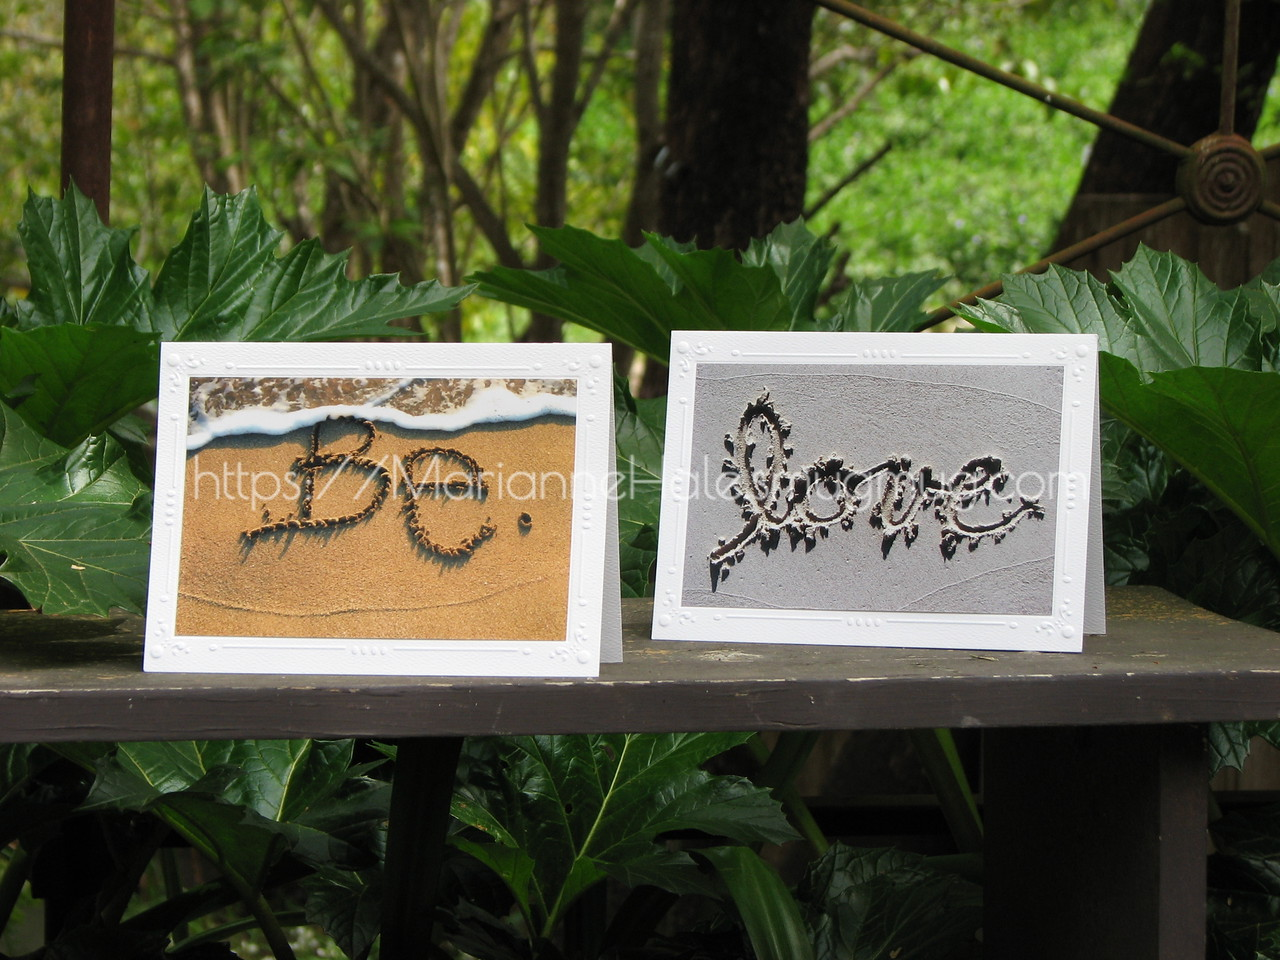 """<div class=""""product""""><span class=""""product-title"""">Set of 5 handmade cards</span> Price: <span class=""""product-price"""">$25.00</span> <br /> <br />  Type the 5 words you wish to buy:<br />       <input class=""""product-attr-words"""" name=""""words"""" type=""""text"""" value=""""""""/> <br /><br />     <div  role=""""button"""" alt=""""Add to cart"""" tabindex=""""0"""" class=""""googlecart-add-button"""">   </div> </div> <br /><br /> Browse for available words:<br /> <a href=""""http://www.mariannehaledesigns.com/Prints/Words-A-G/"""">A-G</a>  